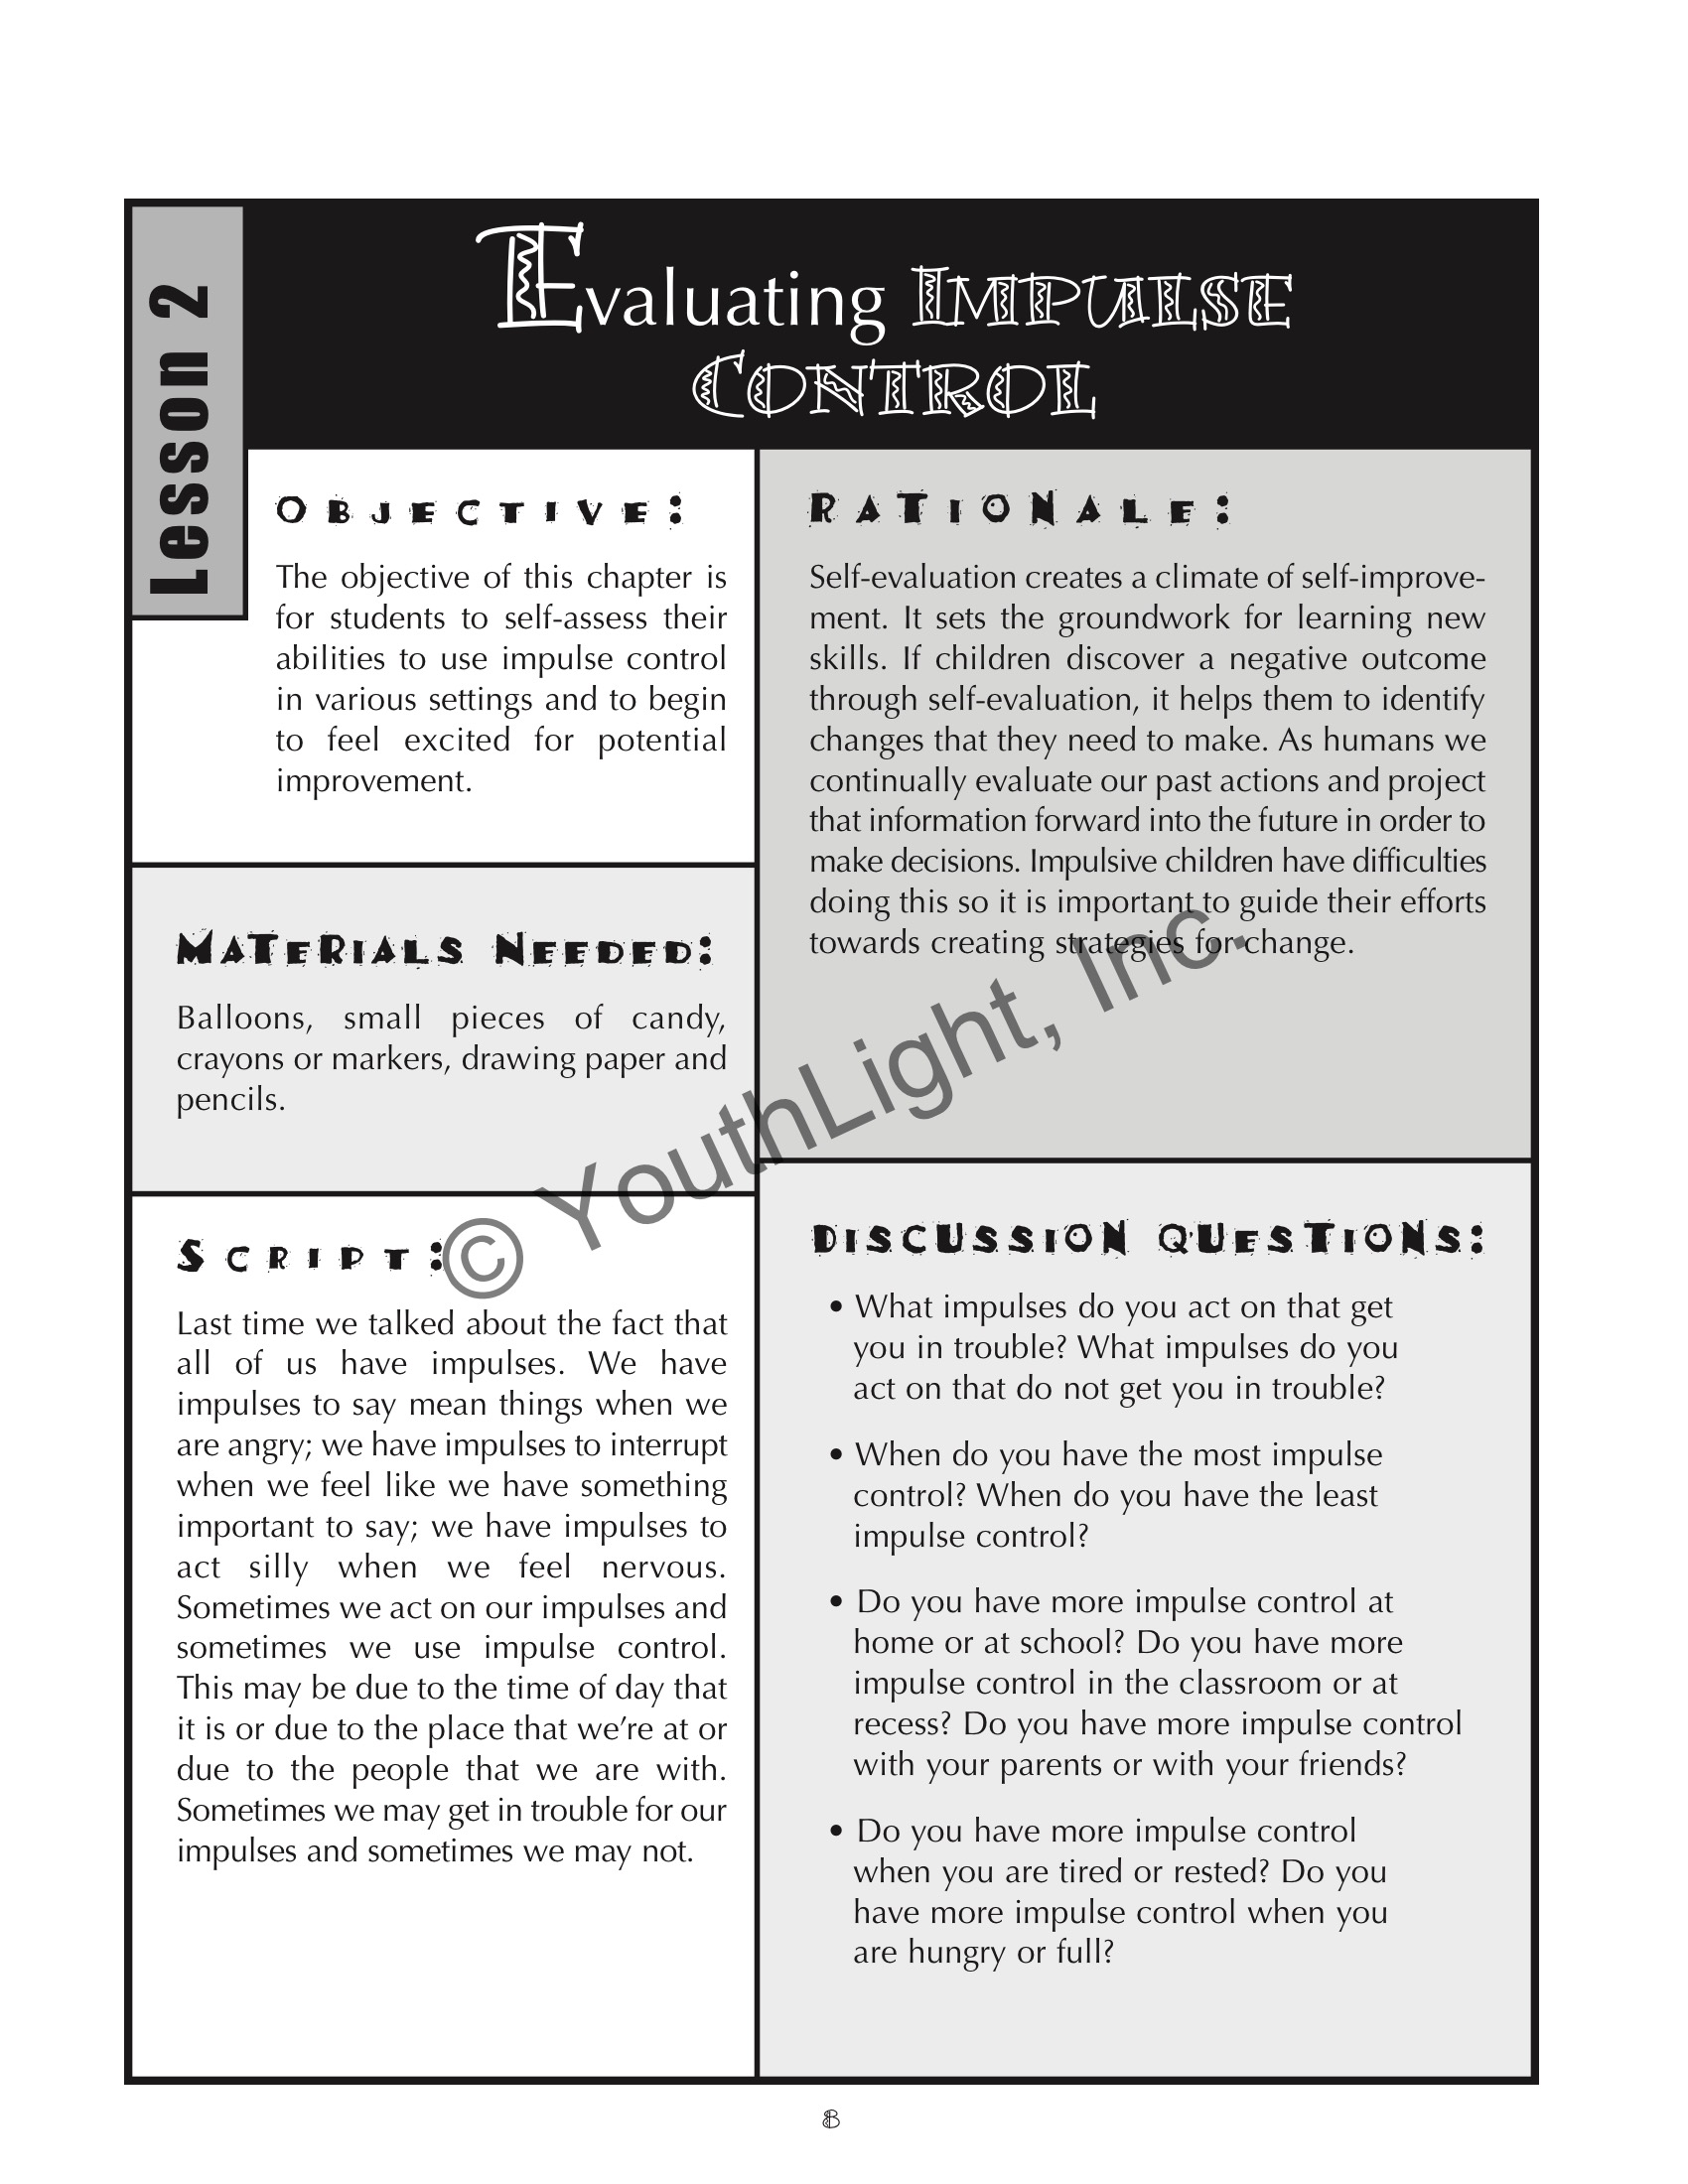 Impulse Control Activities Worksheet